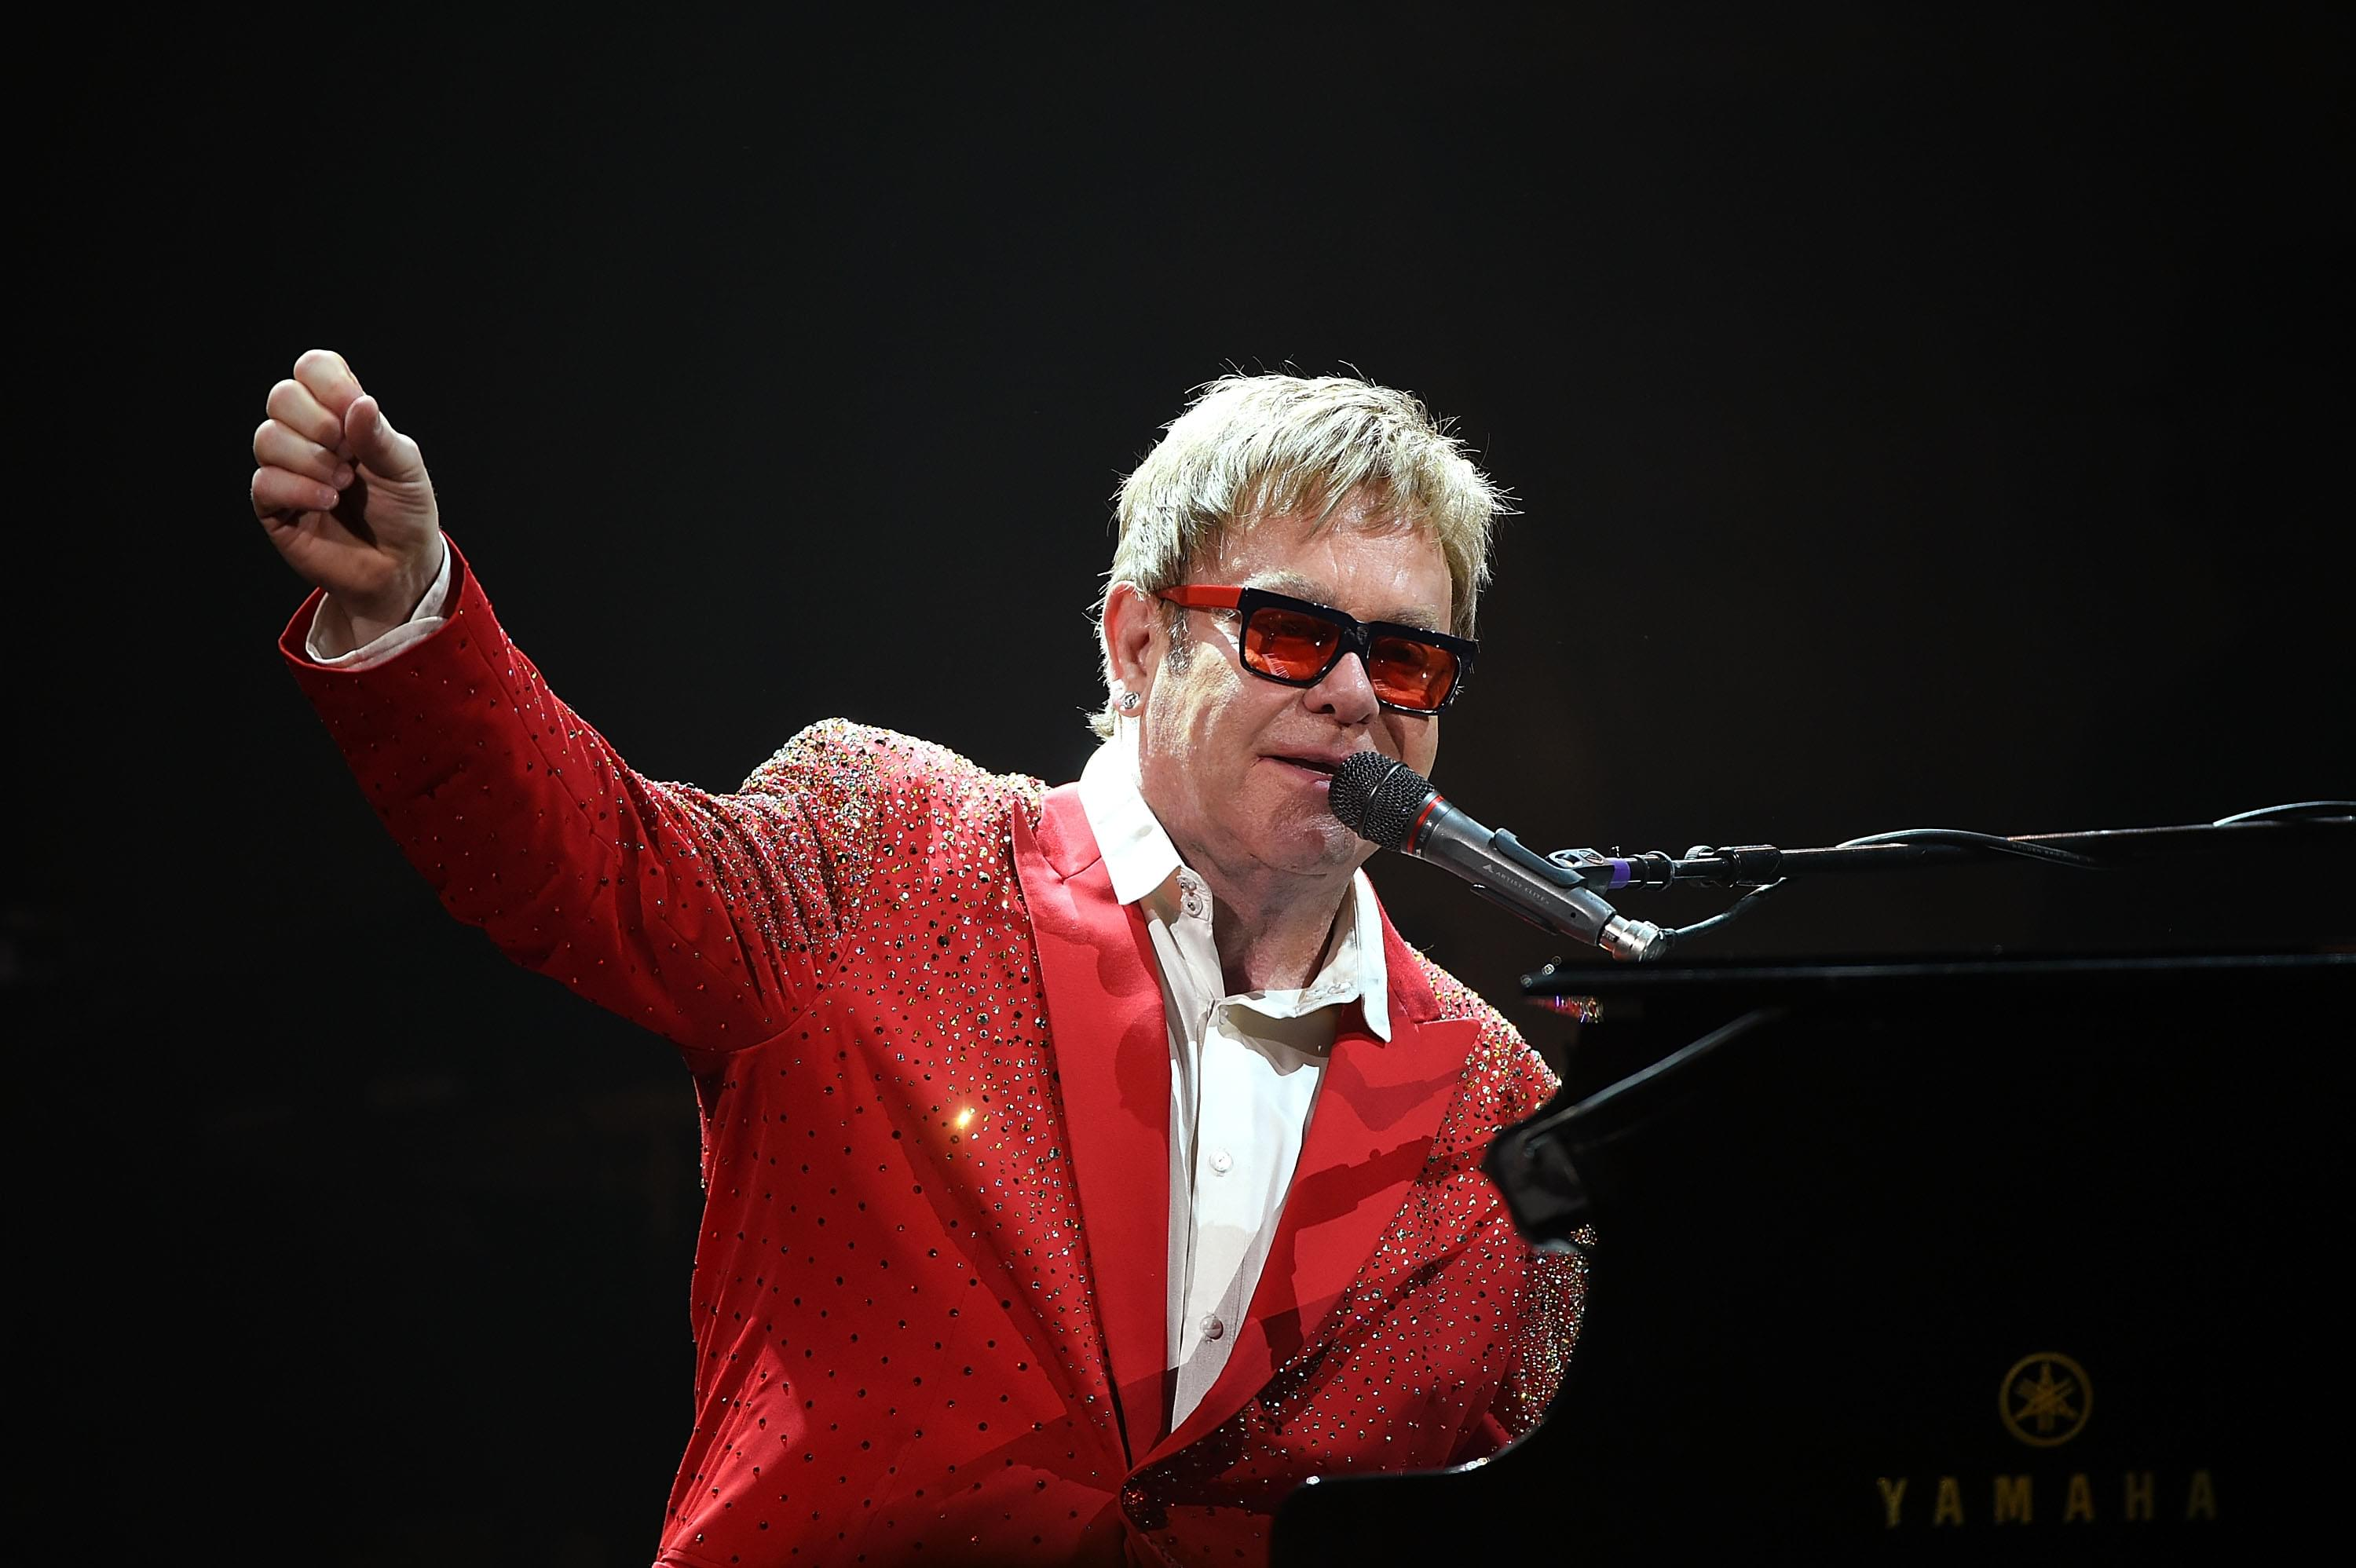 Elton John will stream weekly Classic Concert Series on his YouTube channel